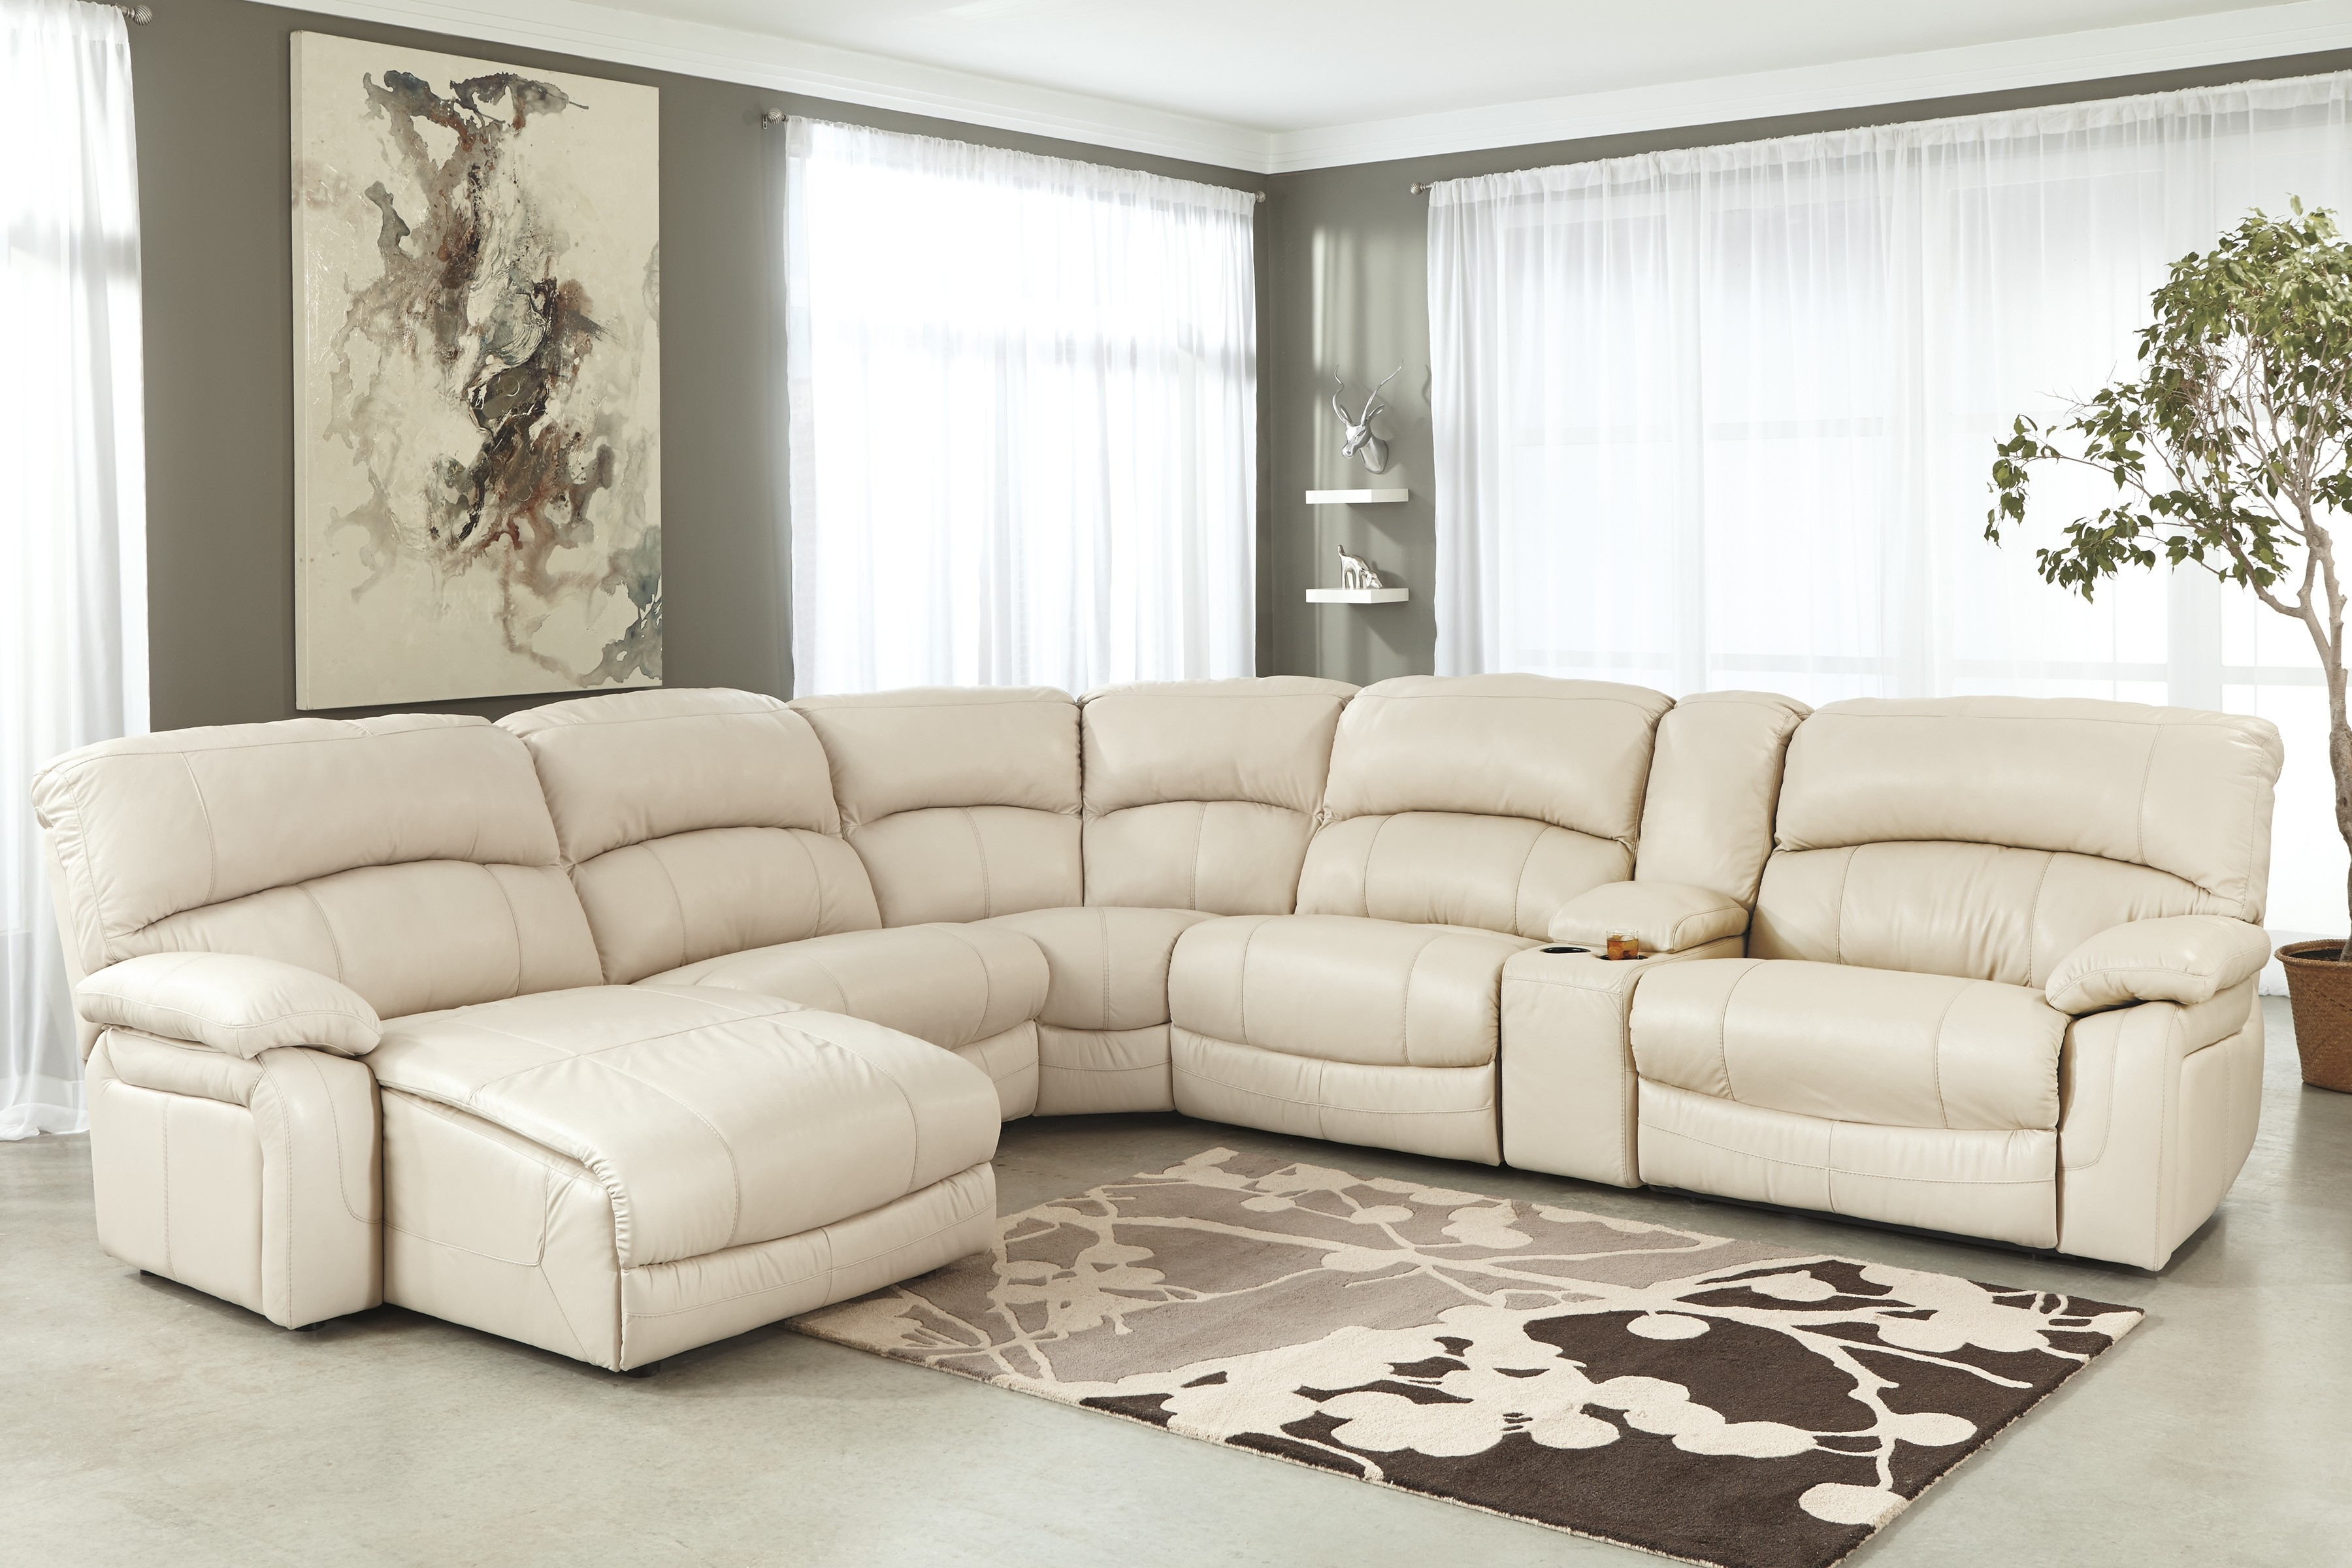 Sectional Sofa Design: Most Inspired White Leather Sectional Sofa With Regard To Recent U Shaped Leather Sectional Sofas (View 8 of 15)